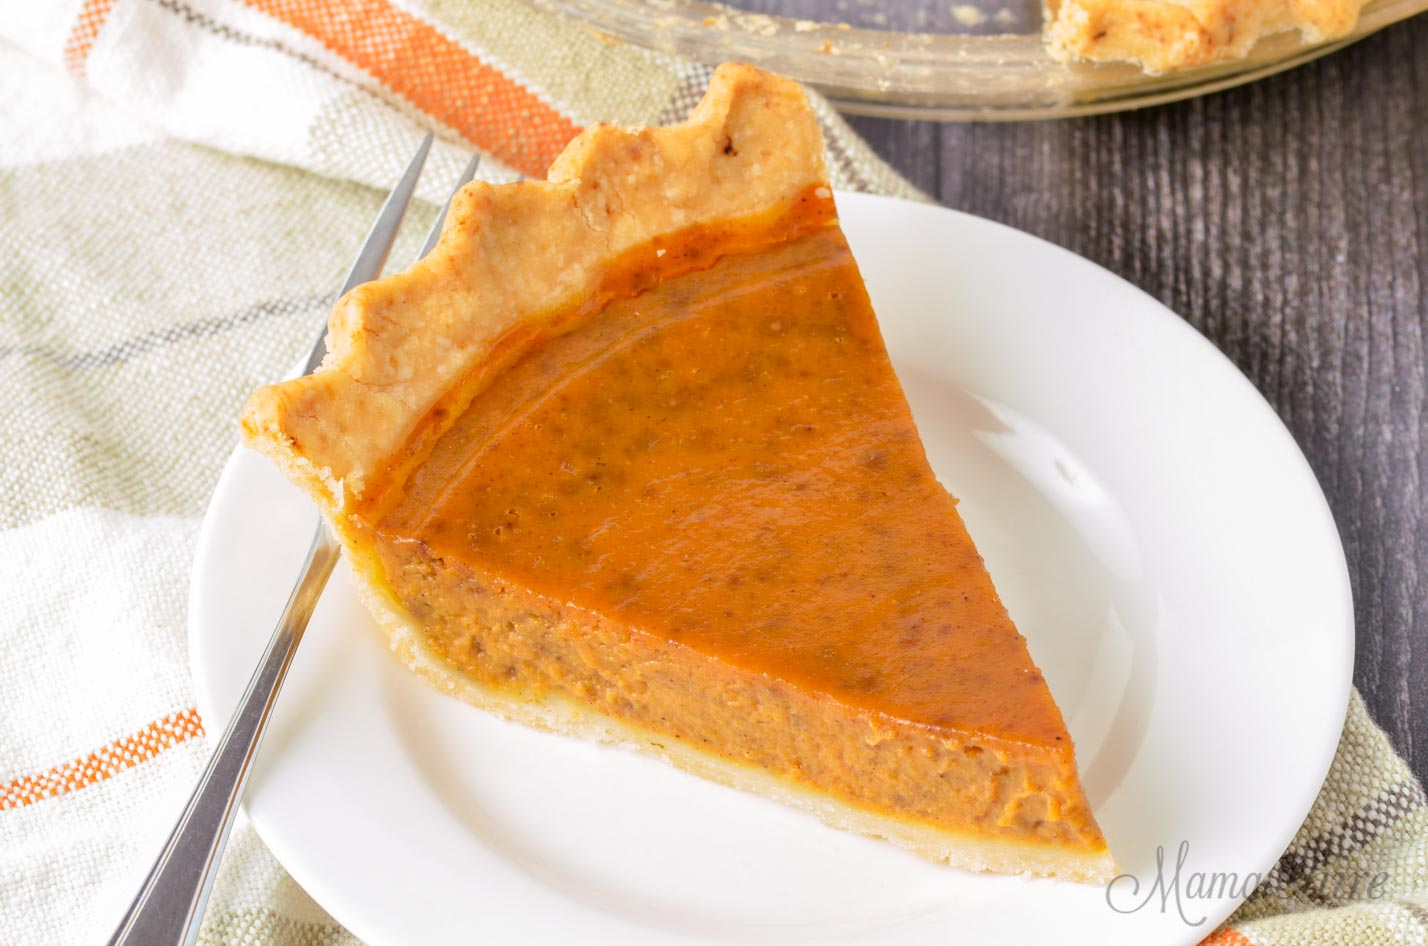 A slice of dairy-free pumpkin pie on a white plate.